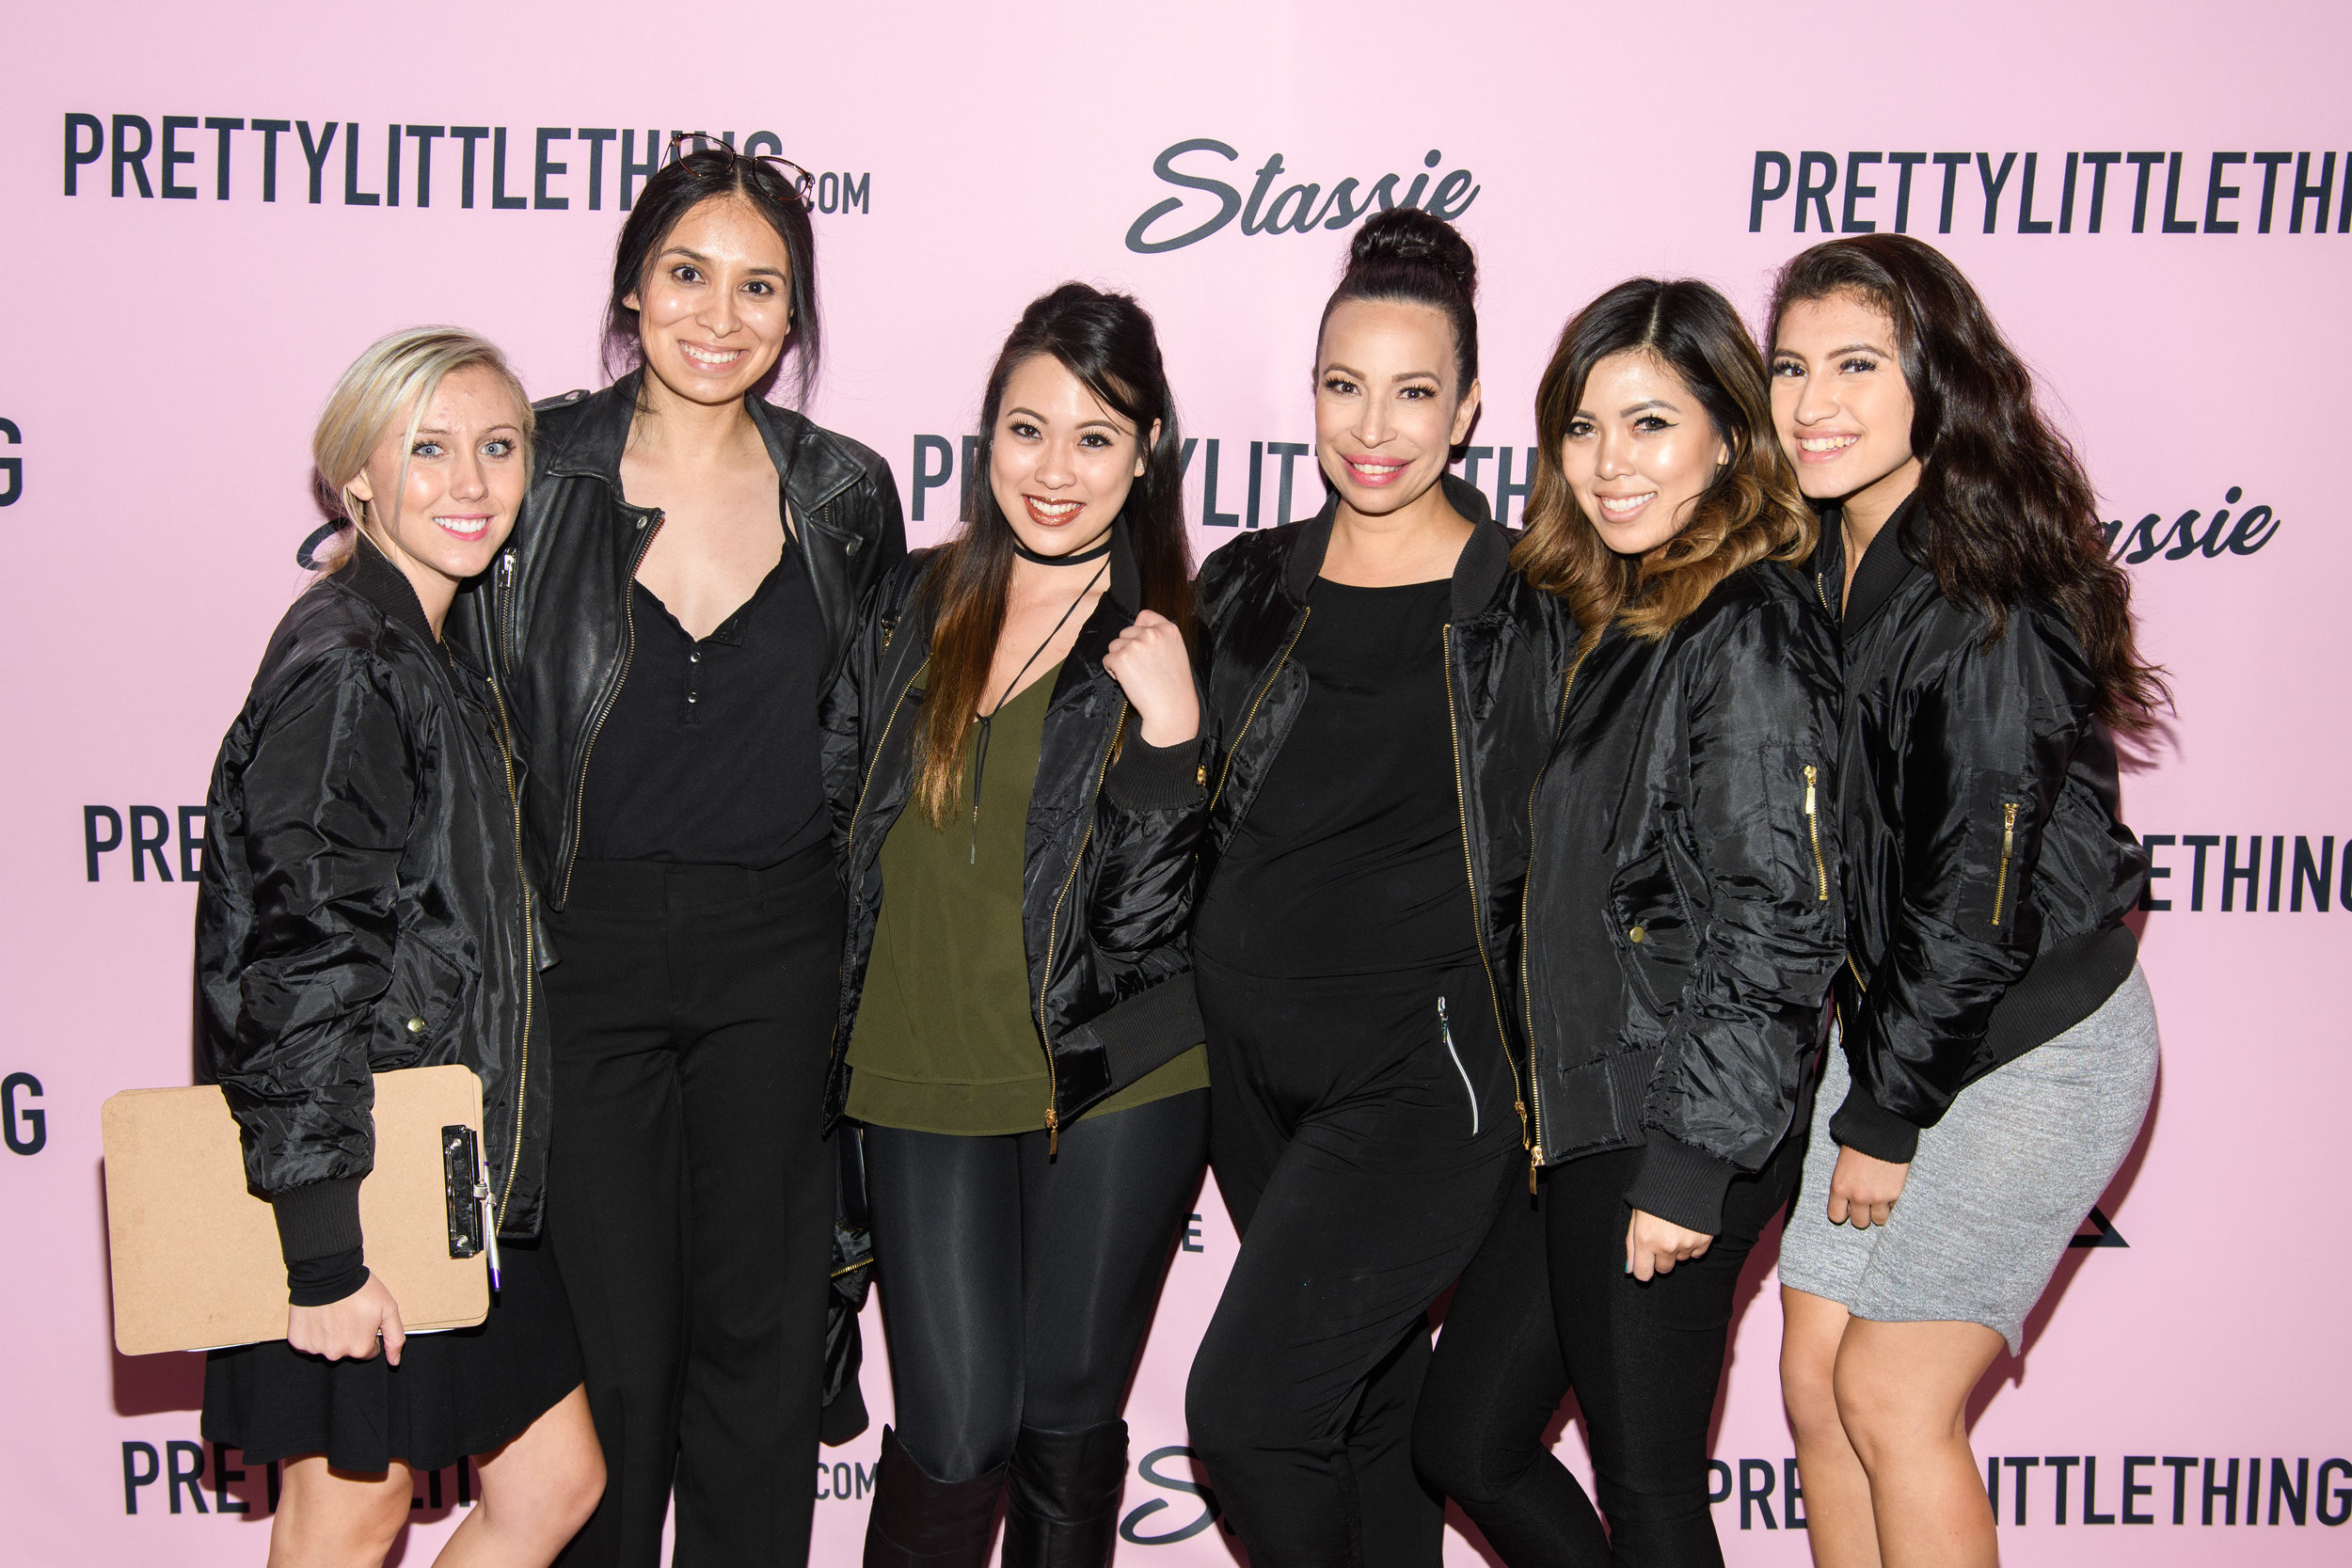 PrettyLittleThing New PLT Shape Collection with Stassie Celebrity Launch Party WOTP Lori poses with team.jpg